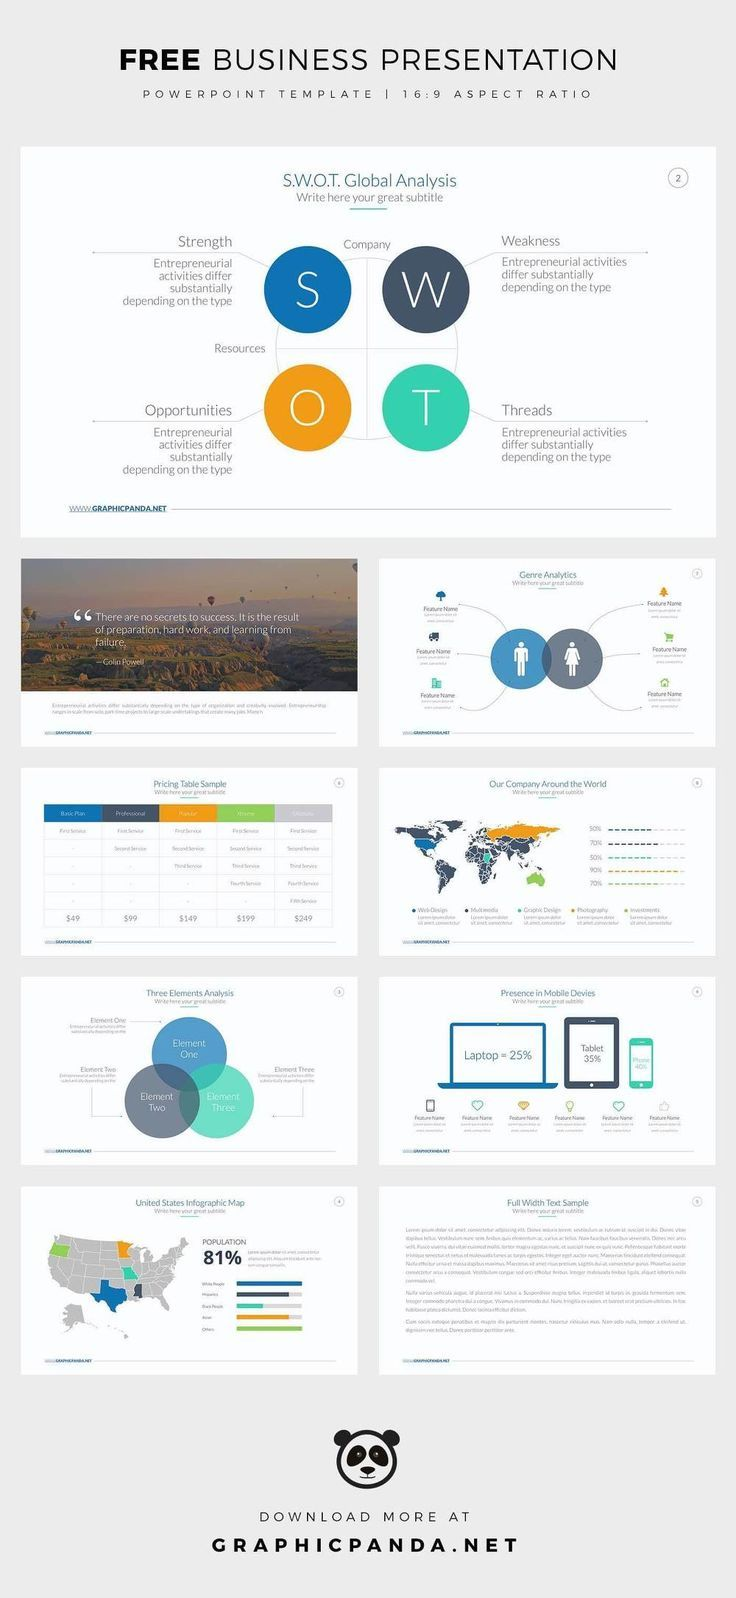 ppt free business ppt free business presentation powerpoint template ppt accmission Choice Image